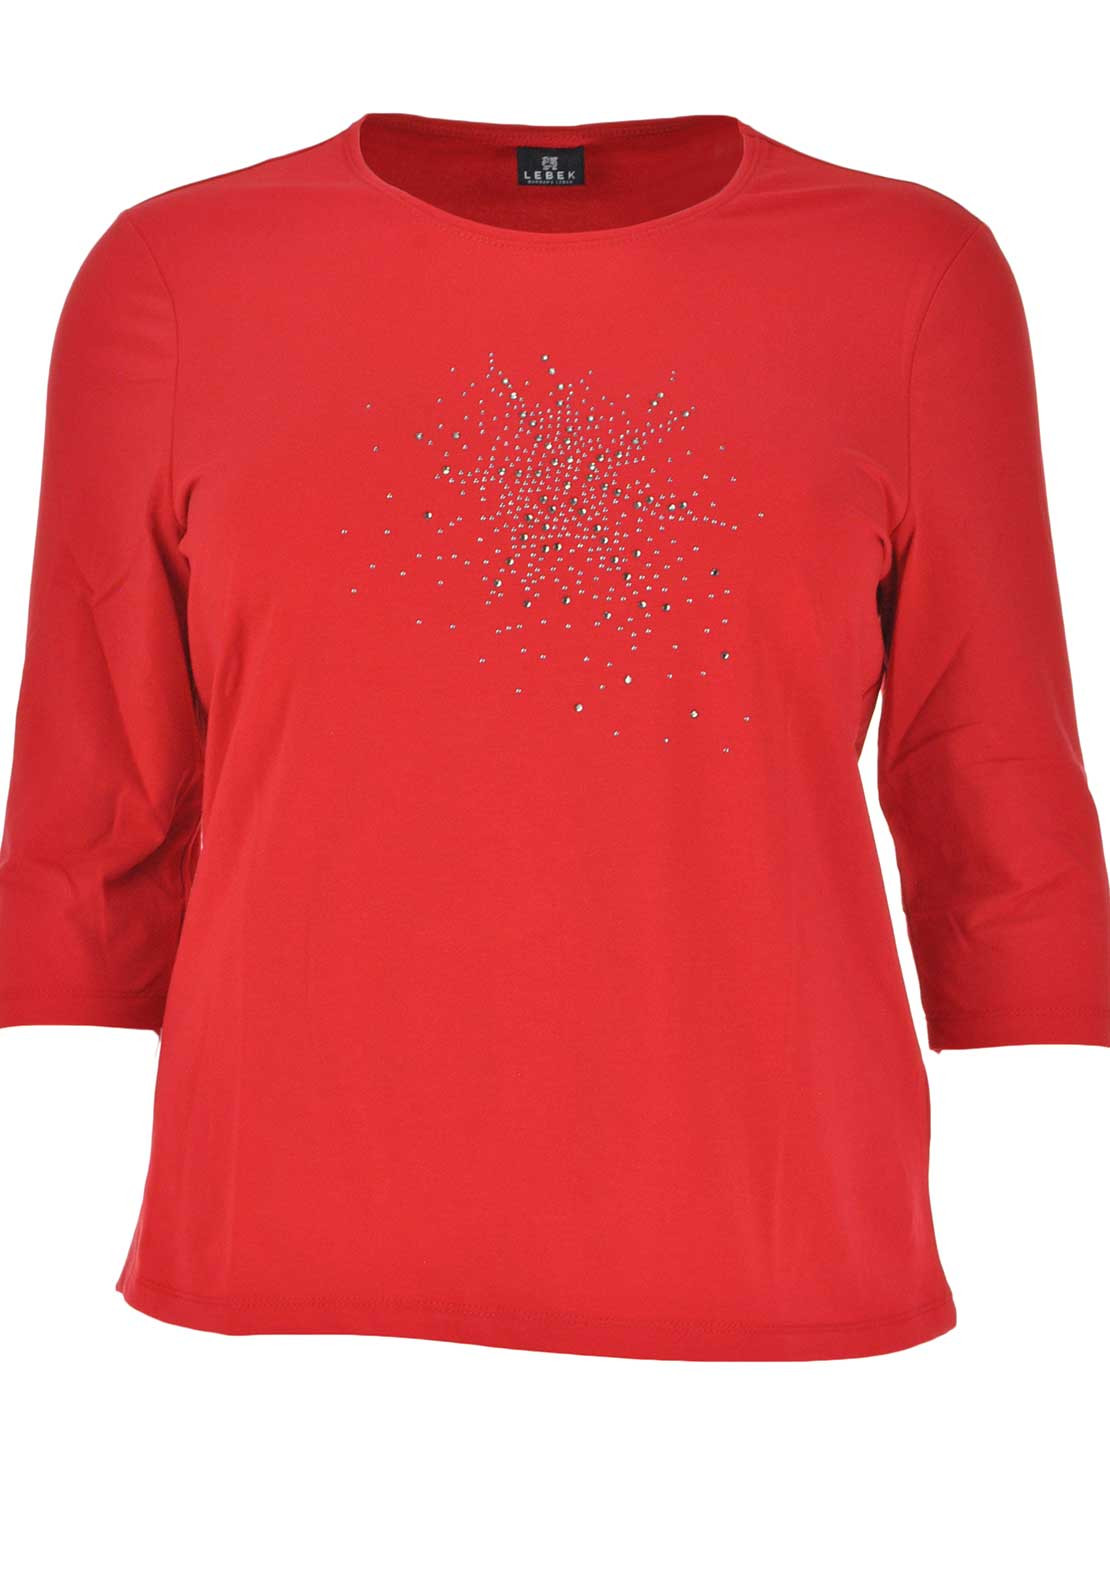 Lebek Rhinestone Embellished Half Sleeve T-Shirt, Red